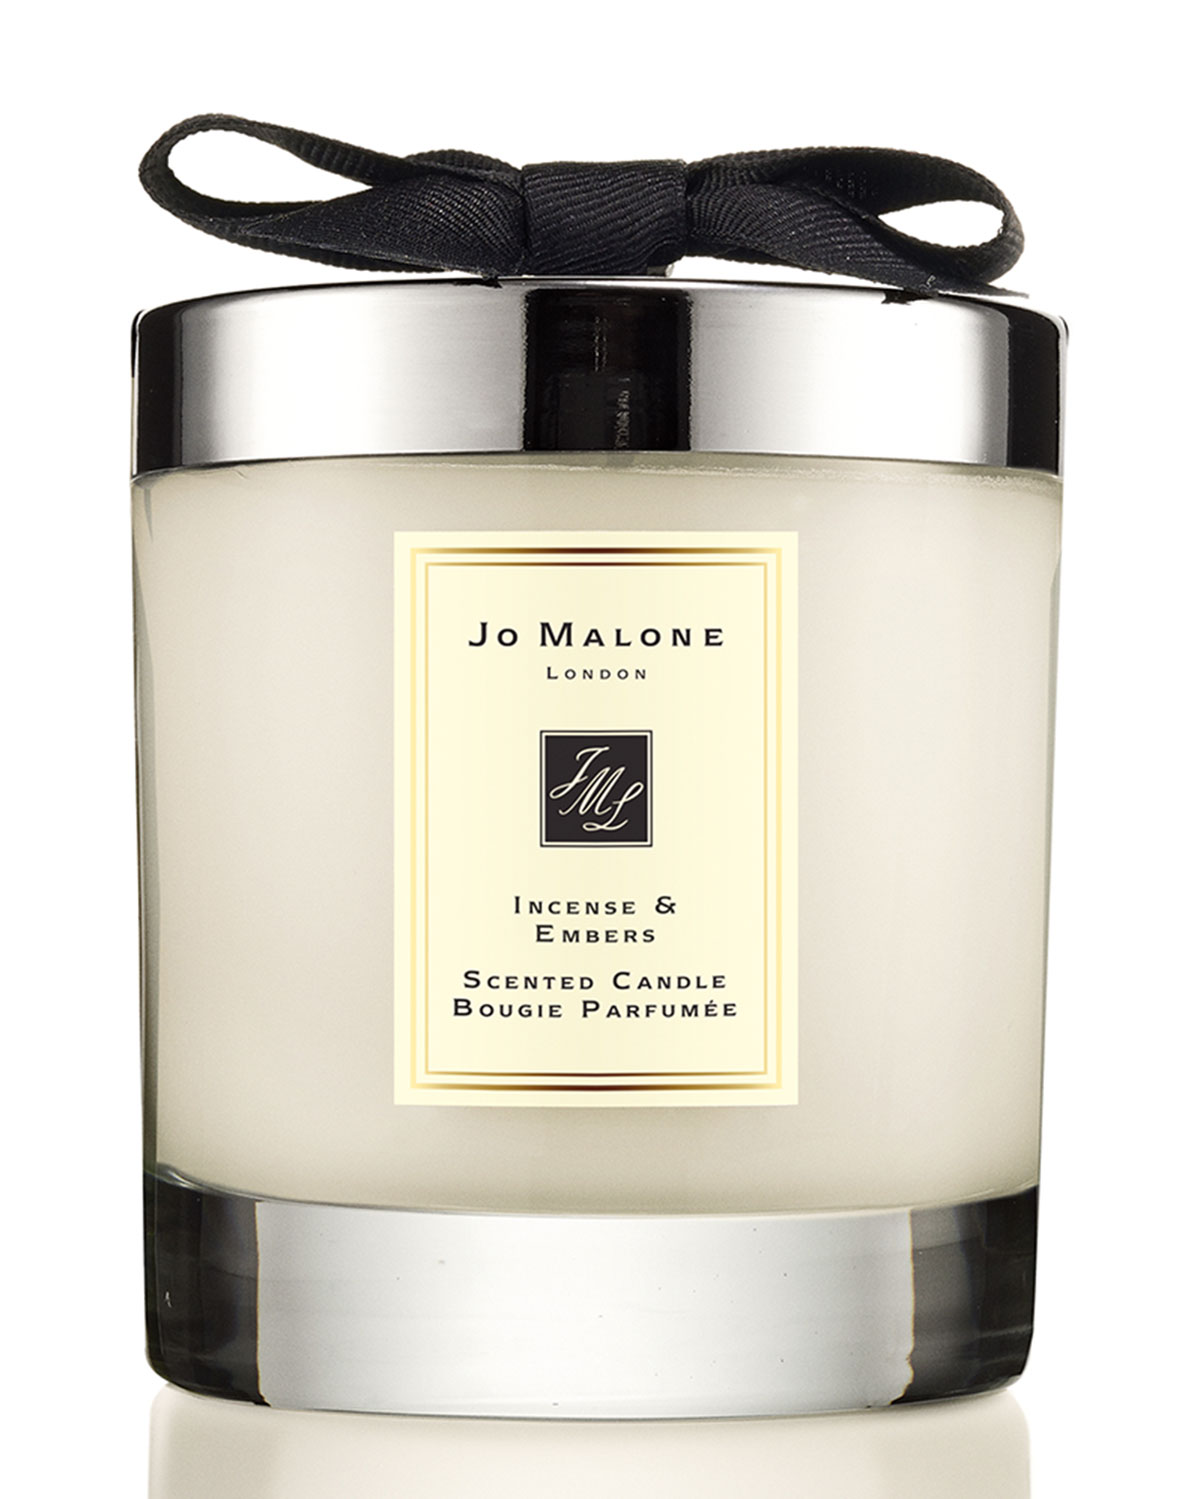 Jo Malone London Incense & Embers Scented Candle, 7 Oz